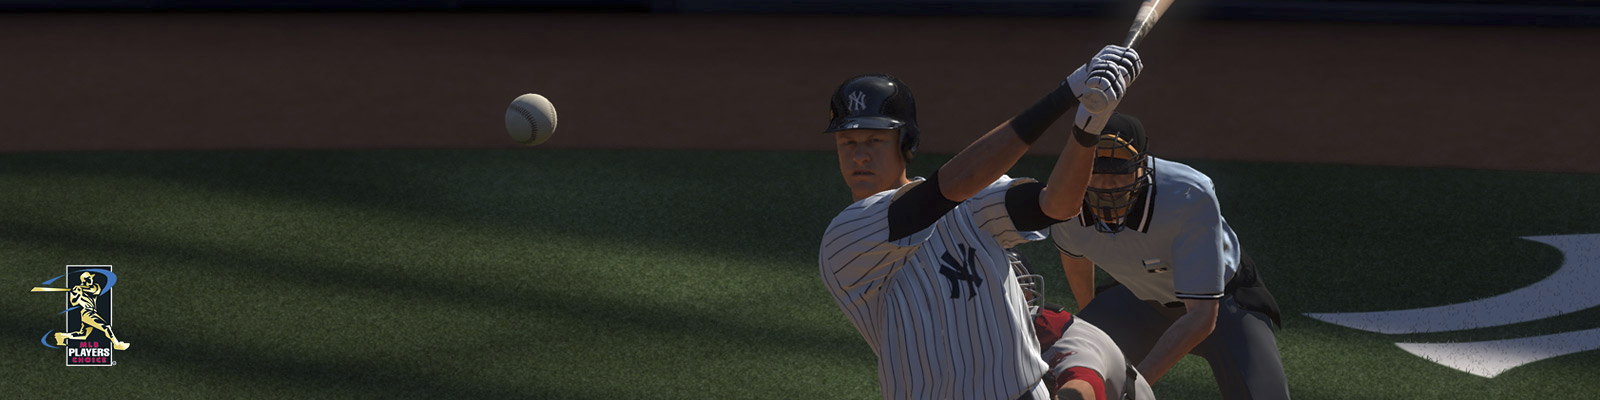 Captura de pantalla 13 de MLB The Show 20